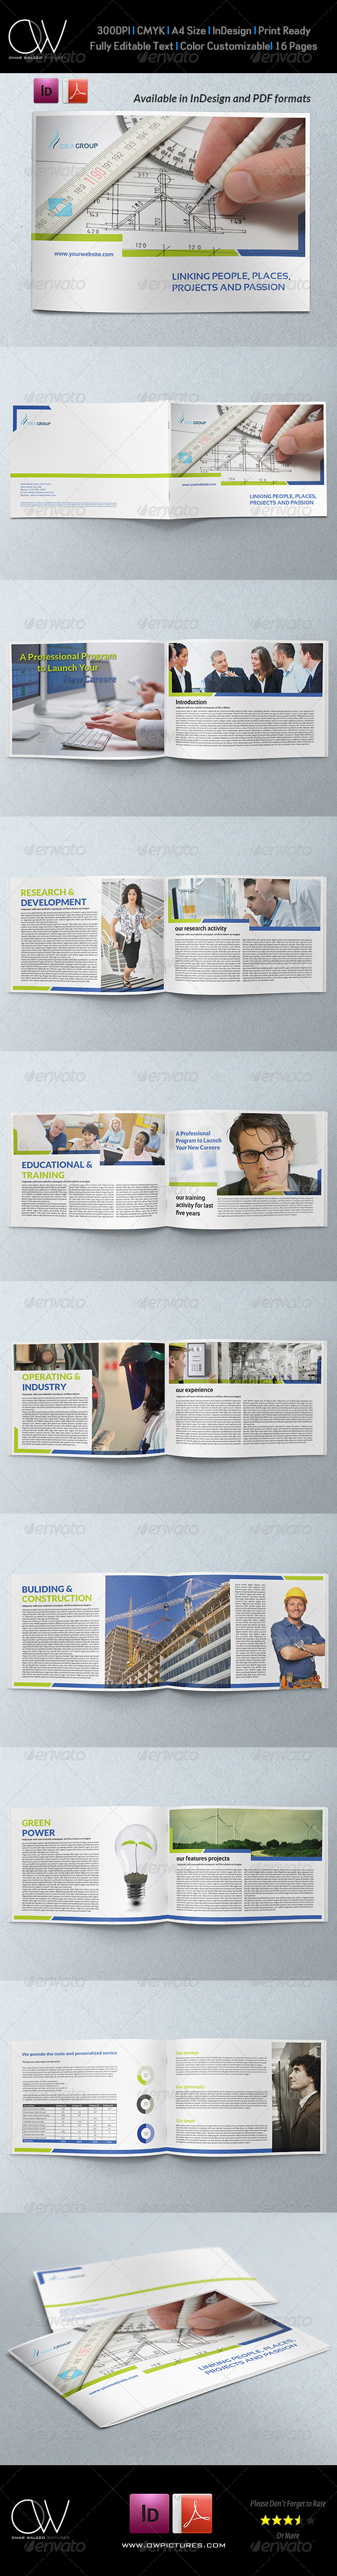 Corporate Brochure Template Vol.25 - 16 Pages - Corporate Brochures